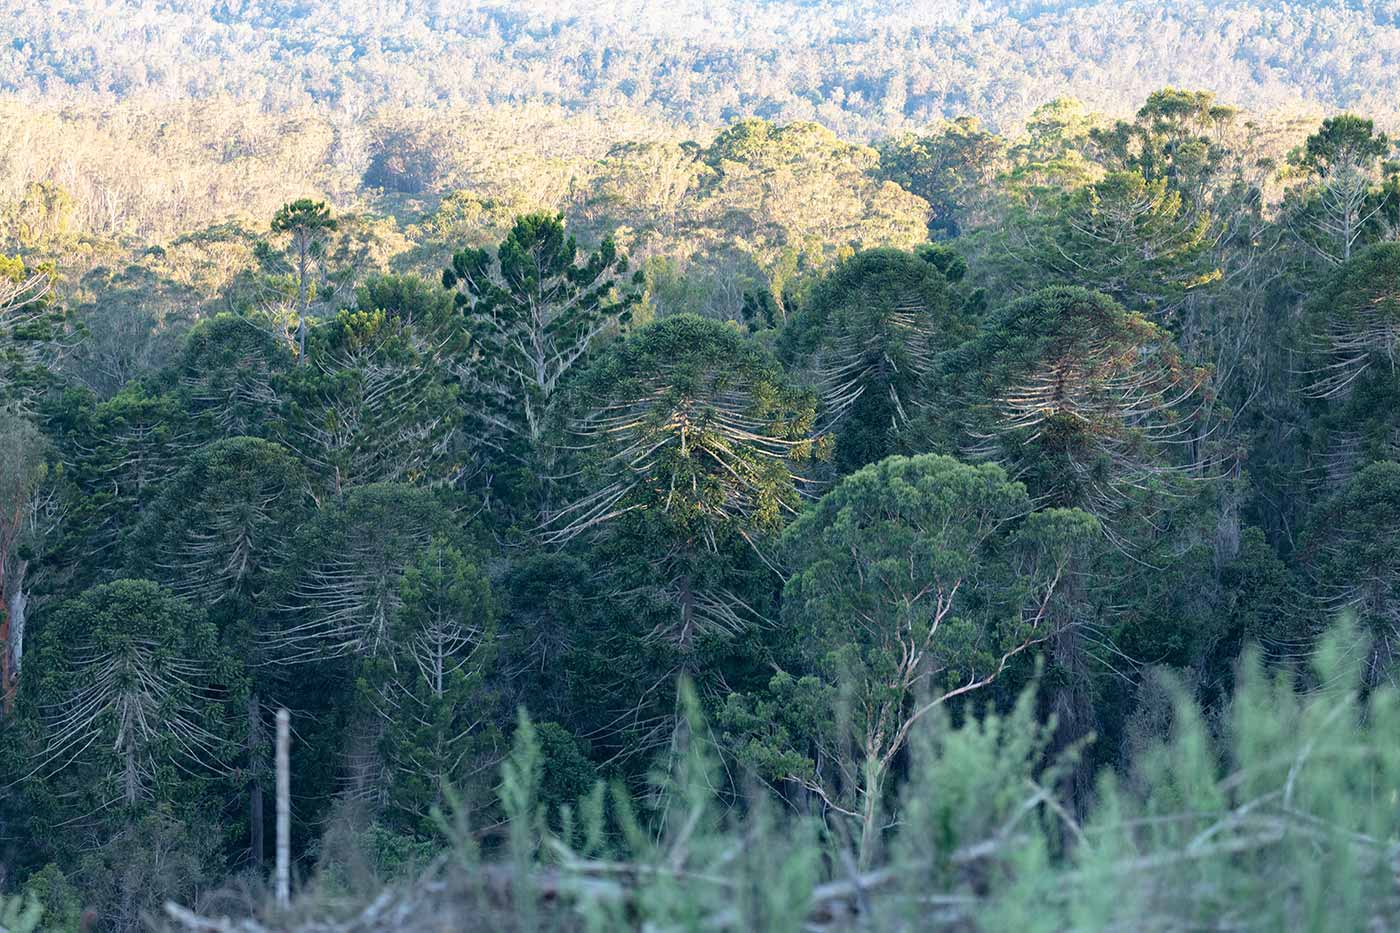 View of a bunya tree forest.